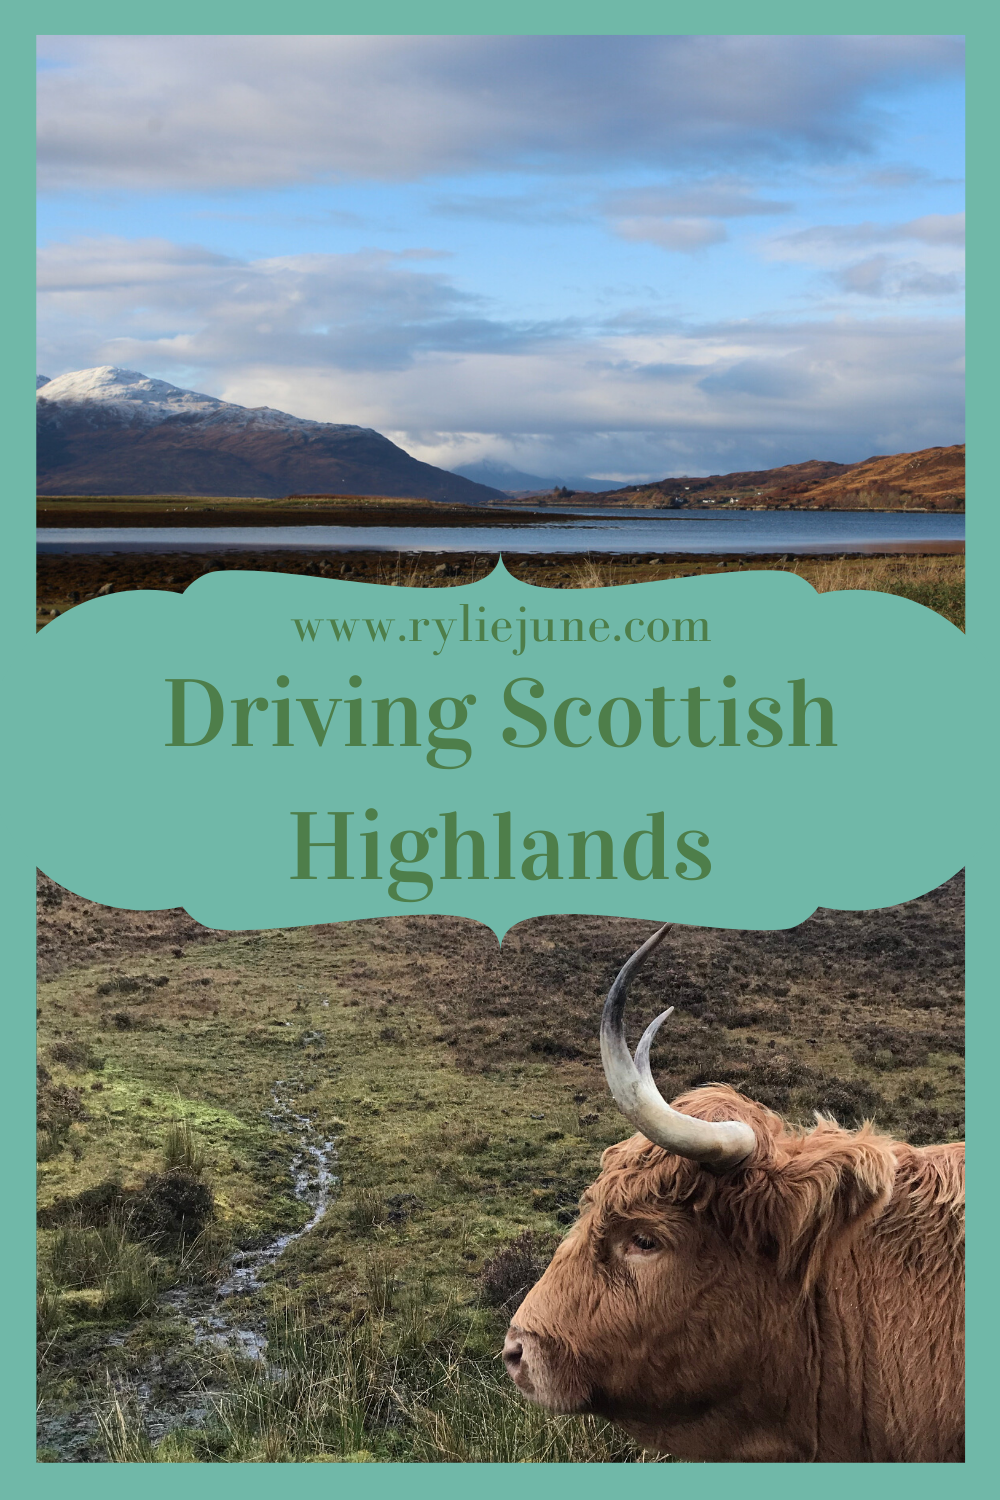 Road tripping in the Scottish Highlands with Contiki